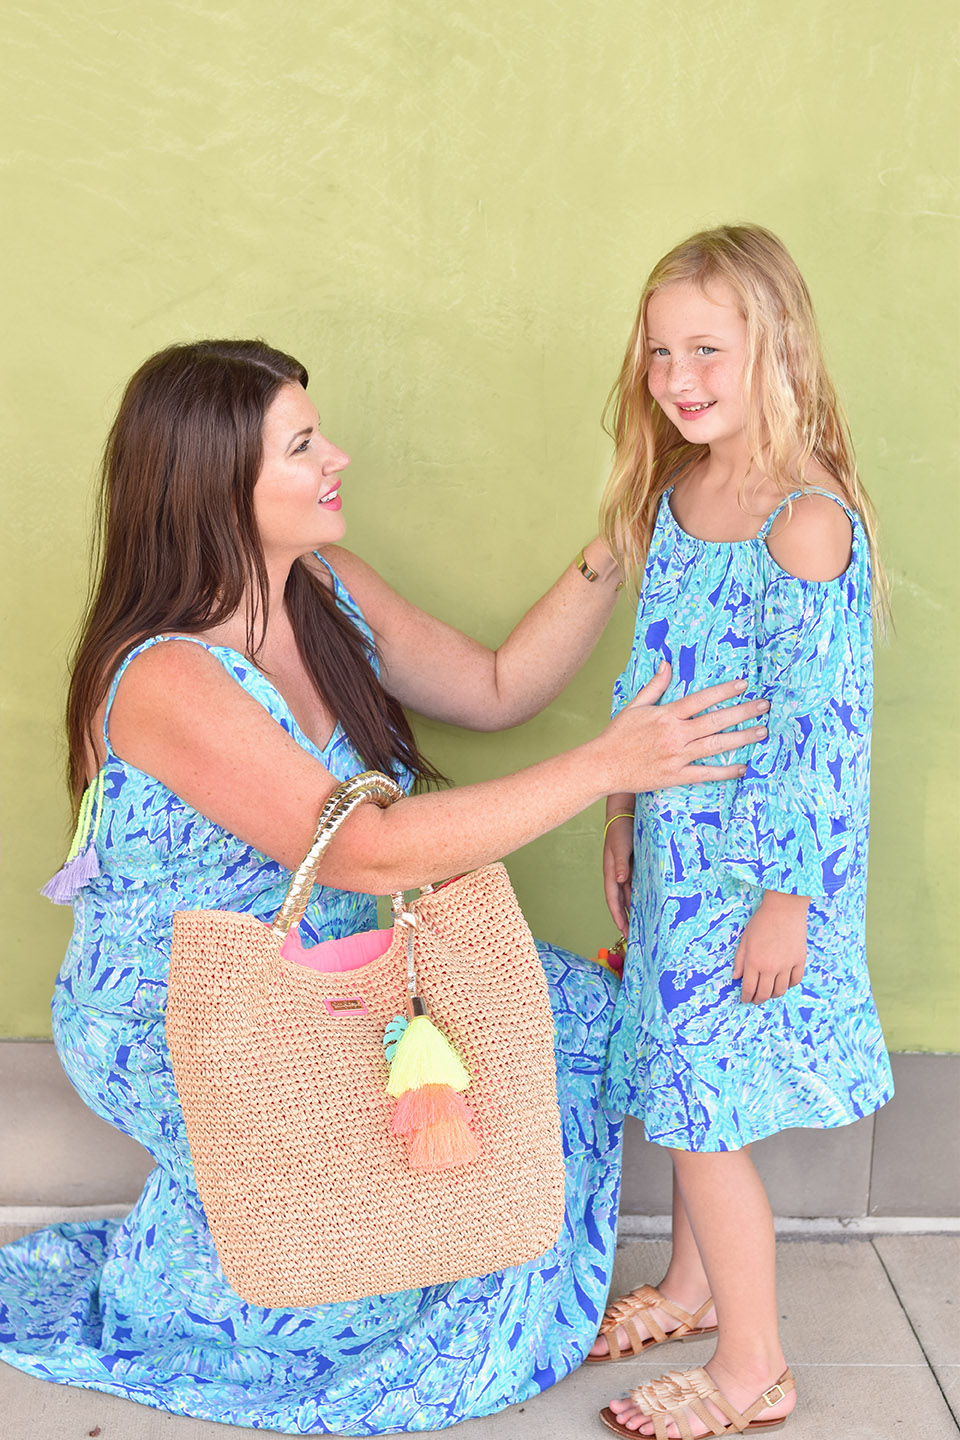 Jami Ray Grand Boulevard Lilly Pulitzer Allair Print Maxi Dress Mommy and Me